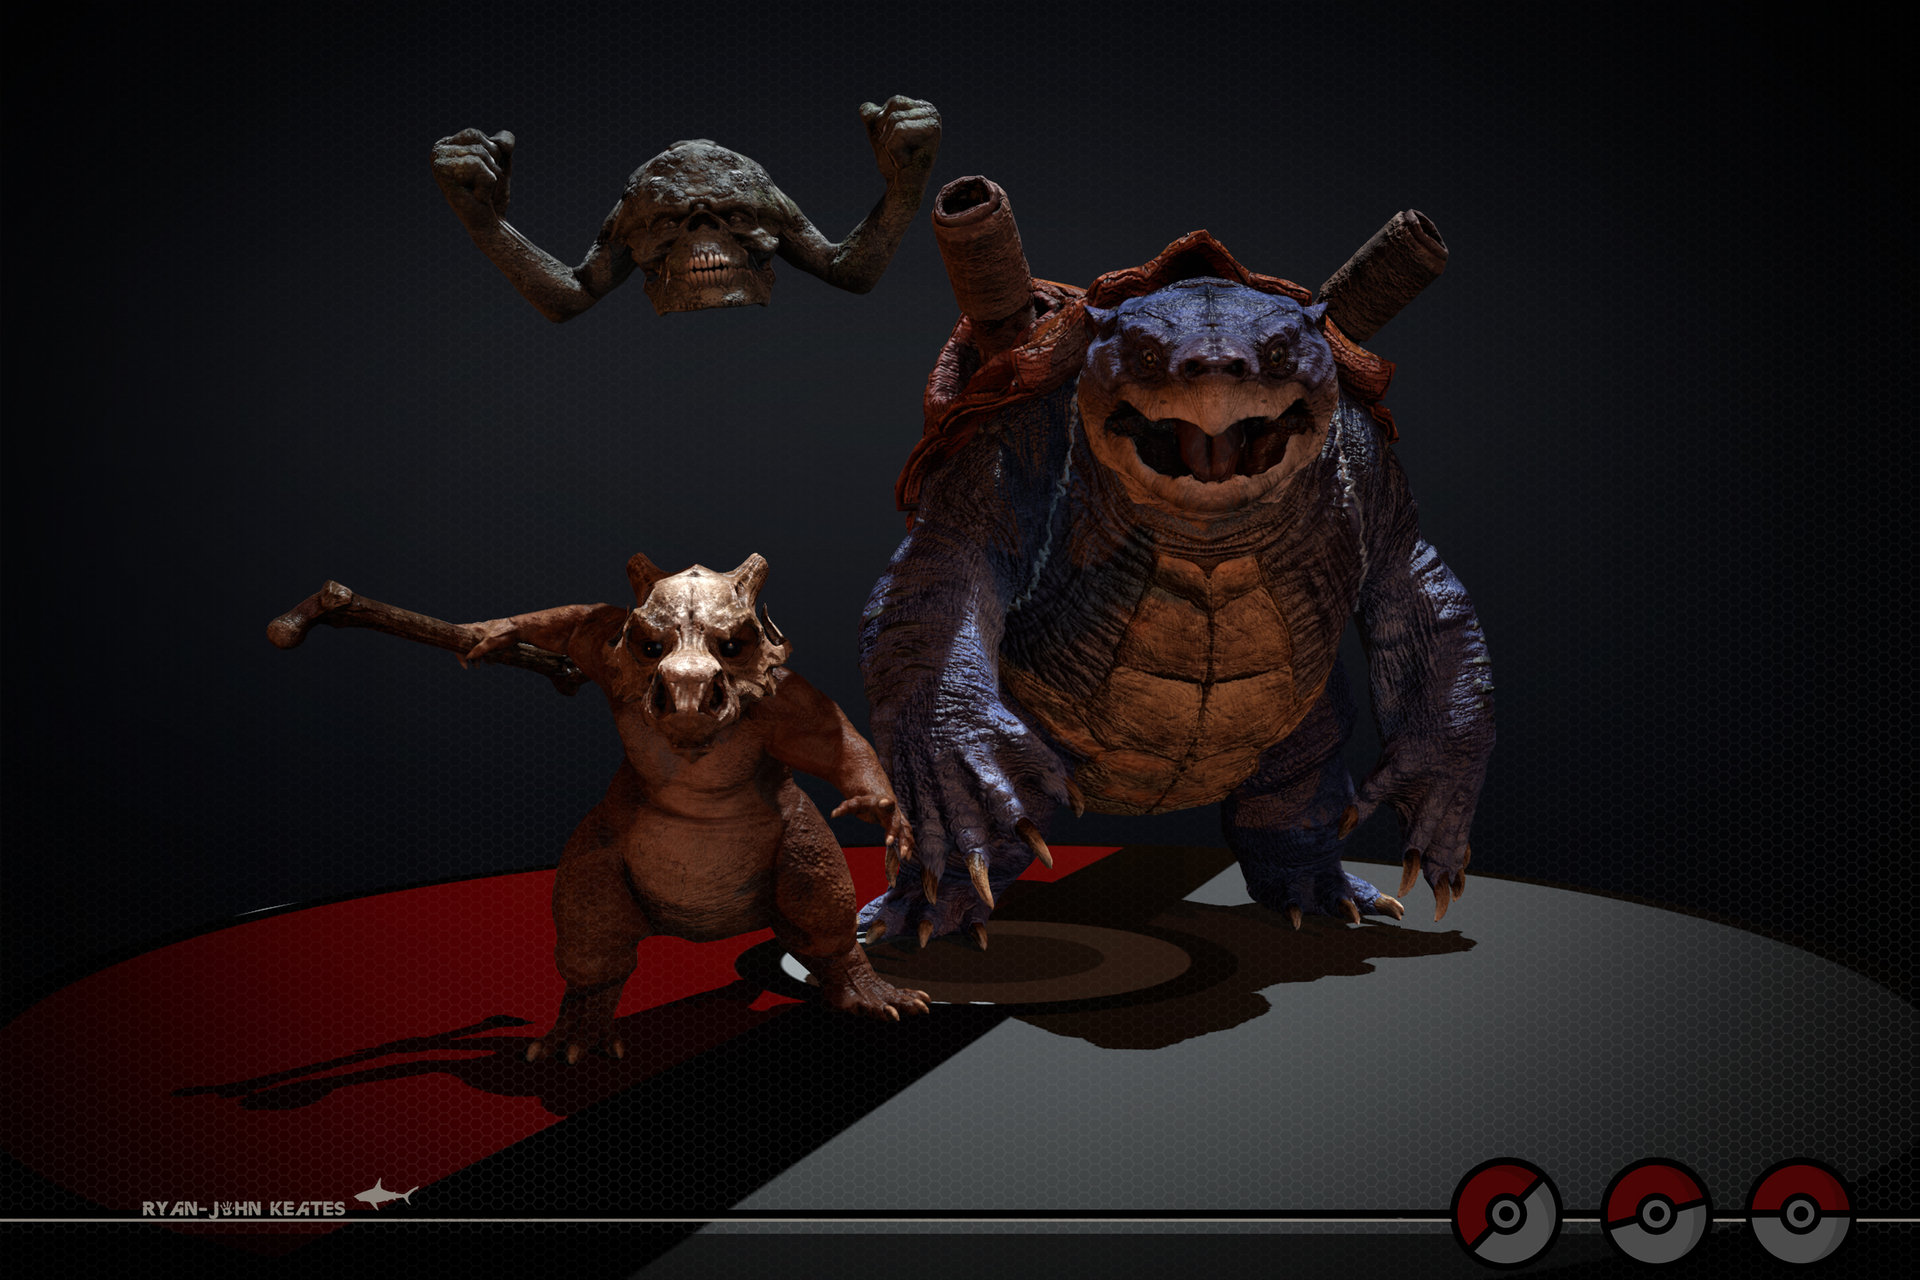 3d video game characters having some fun 8 2